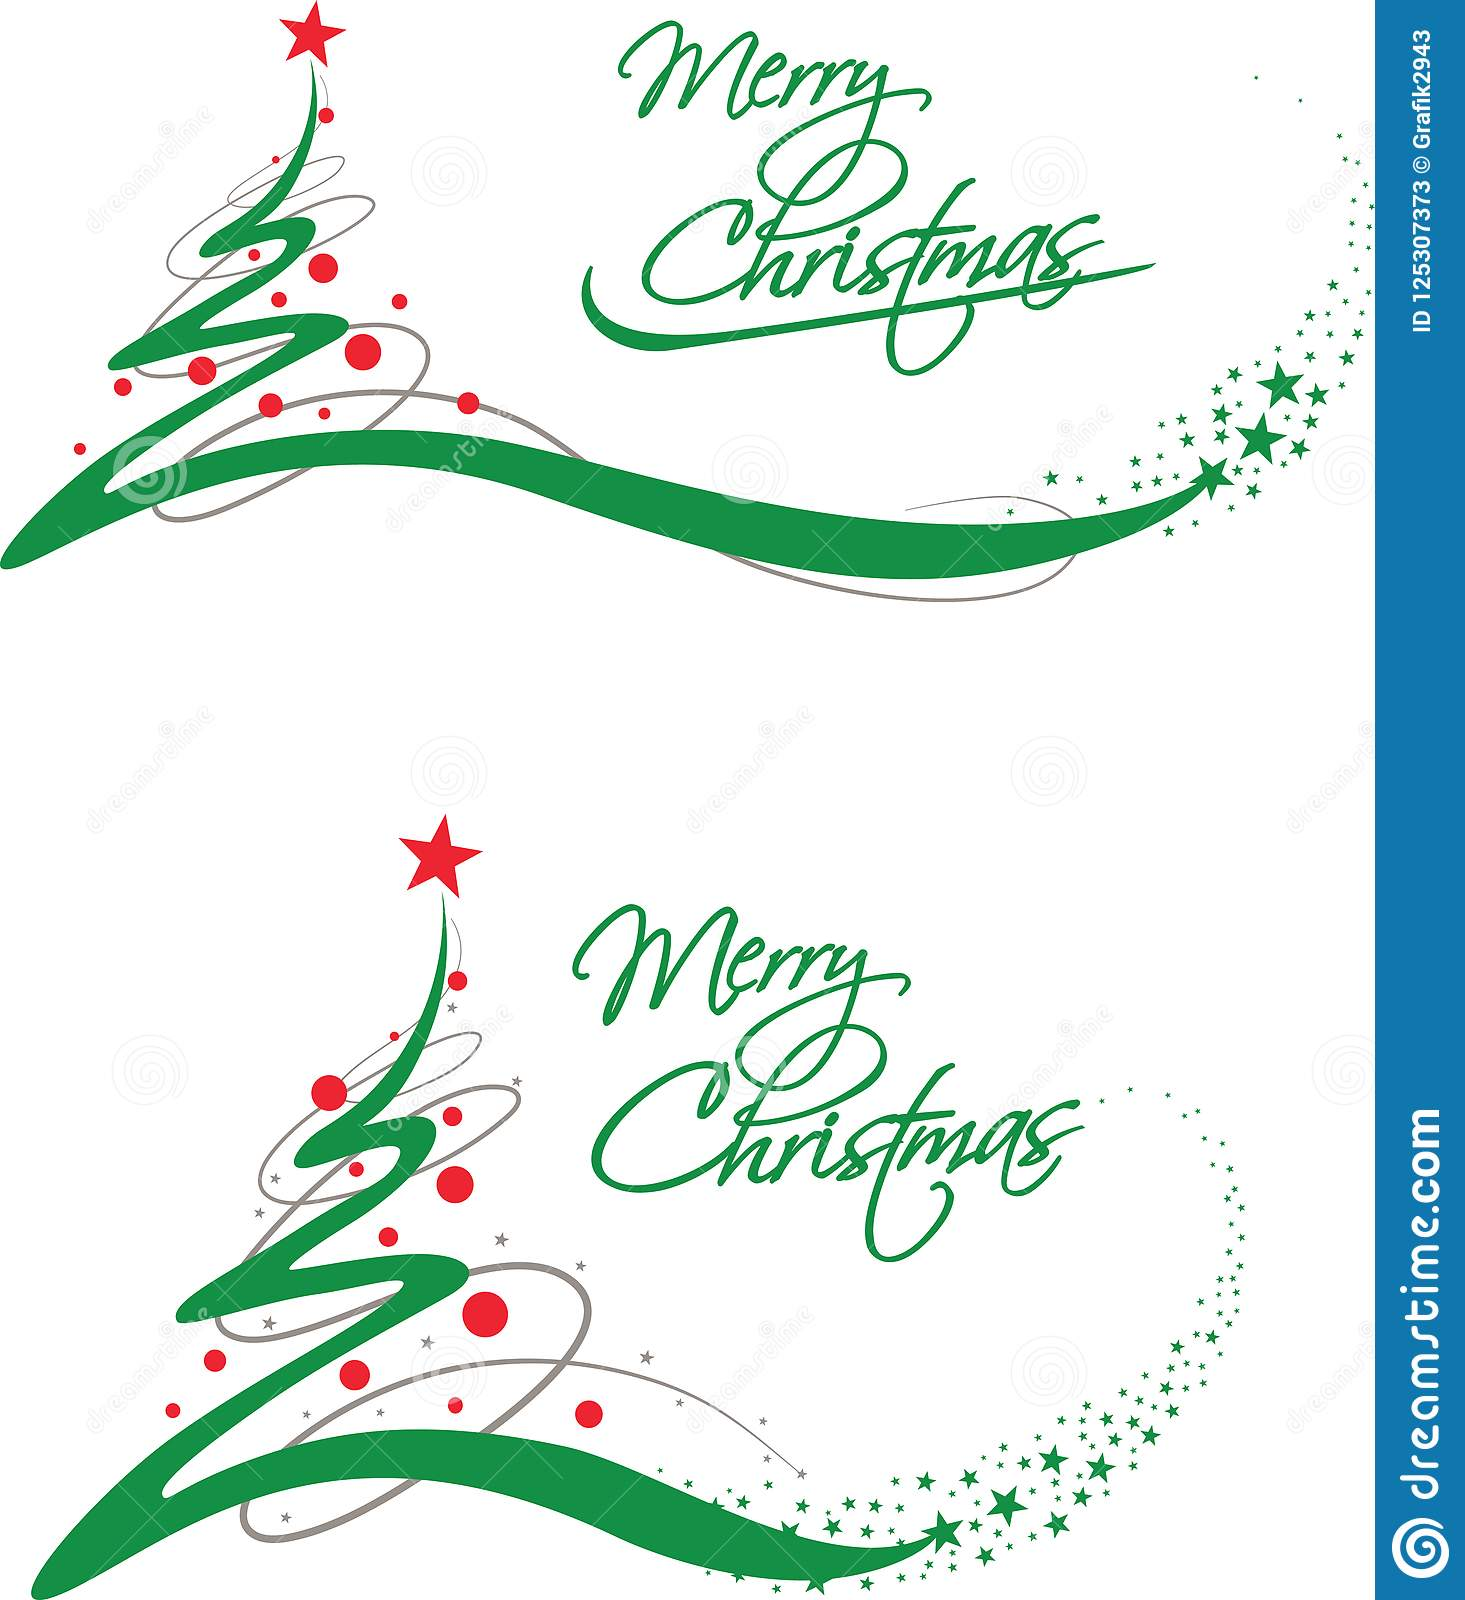 Merry Christmas Gift Card With Green Tree And Stars Stock Vector ...